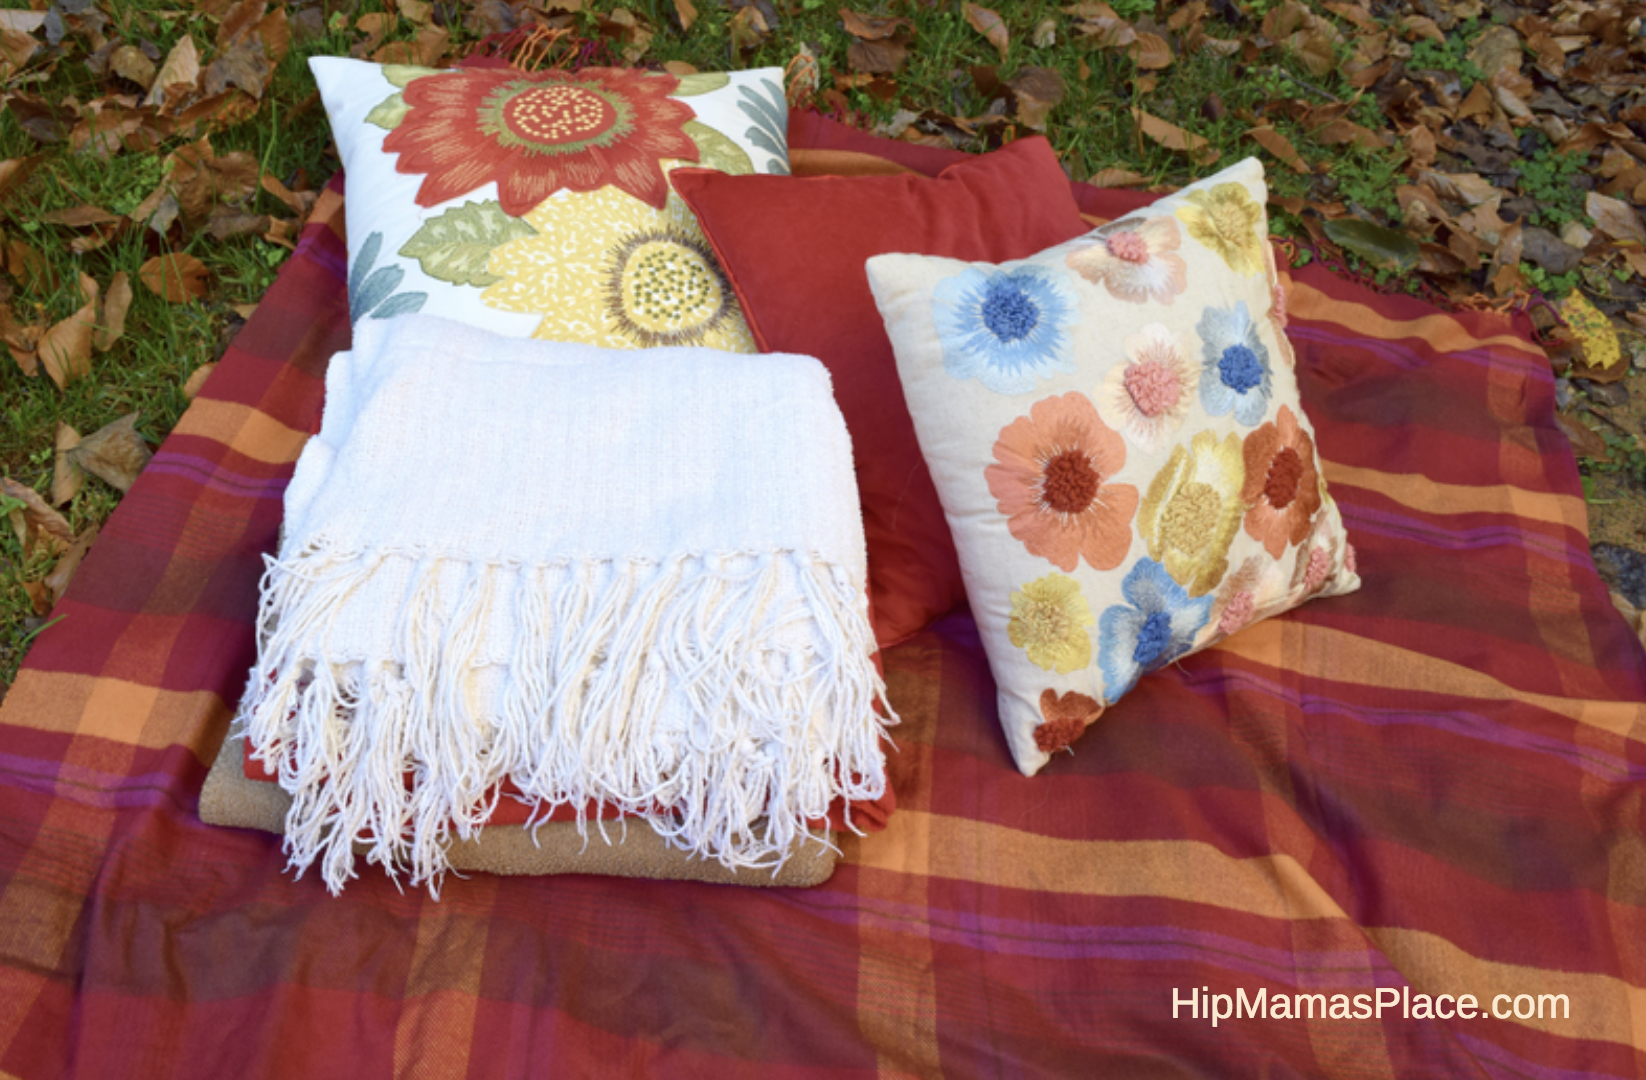 For a successful and fun fall picnic, toss blankets and floor pillows on the ground to create nesting spots.